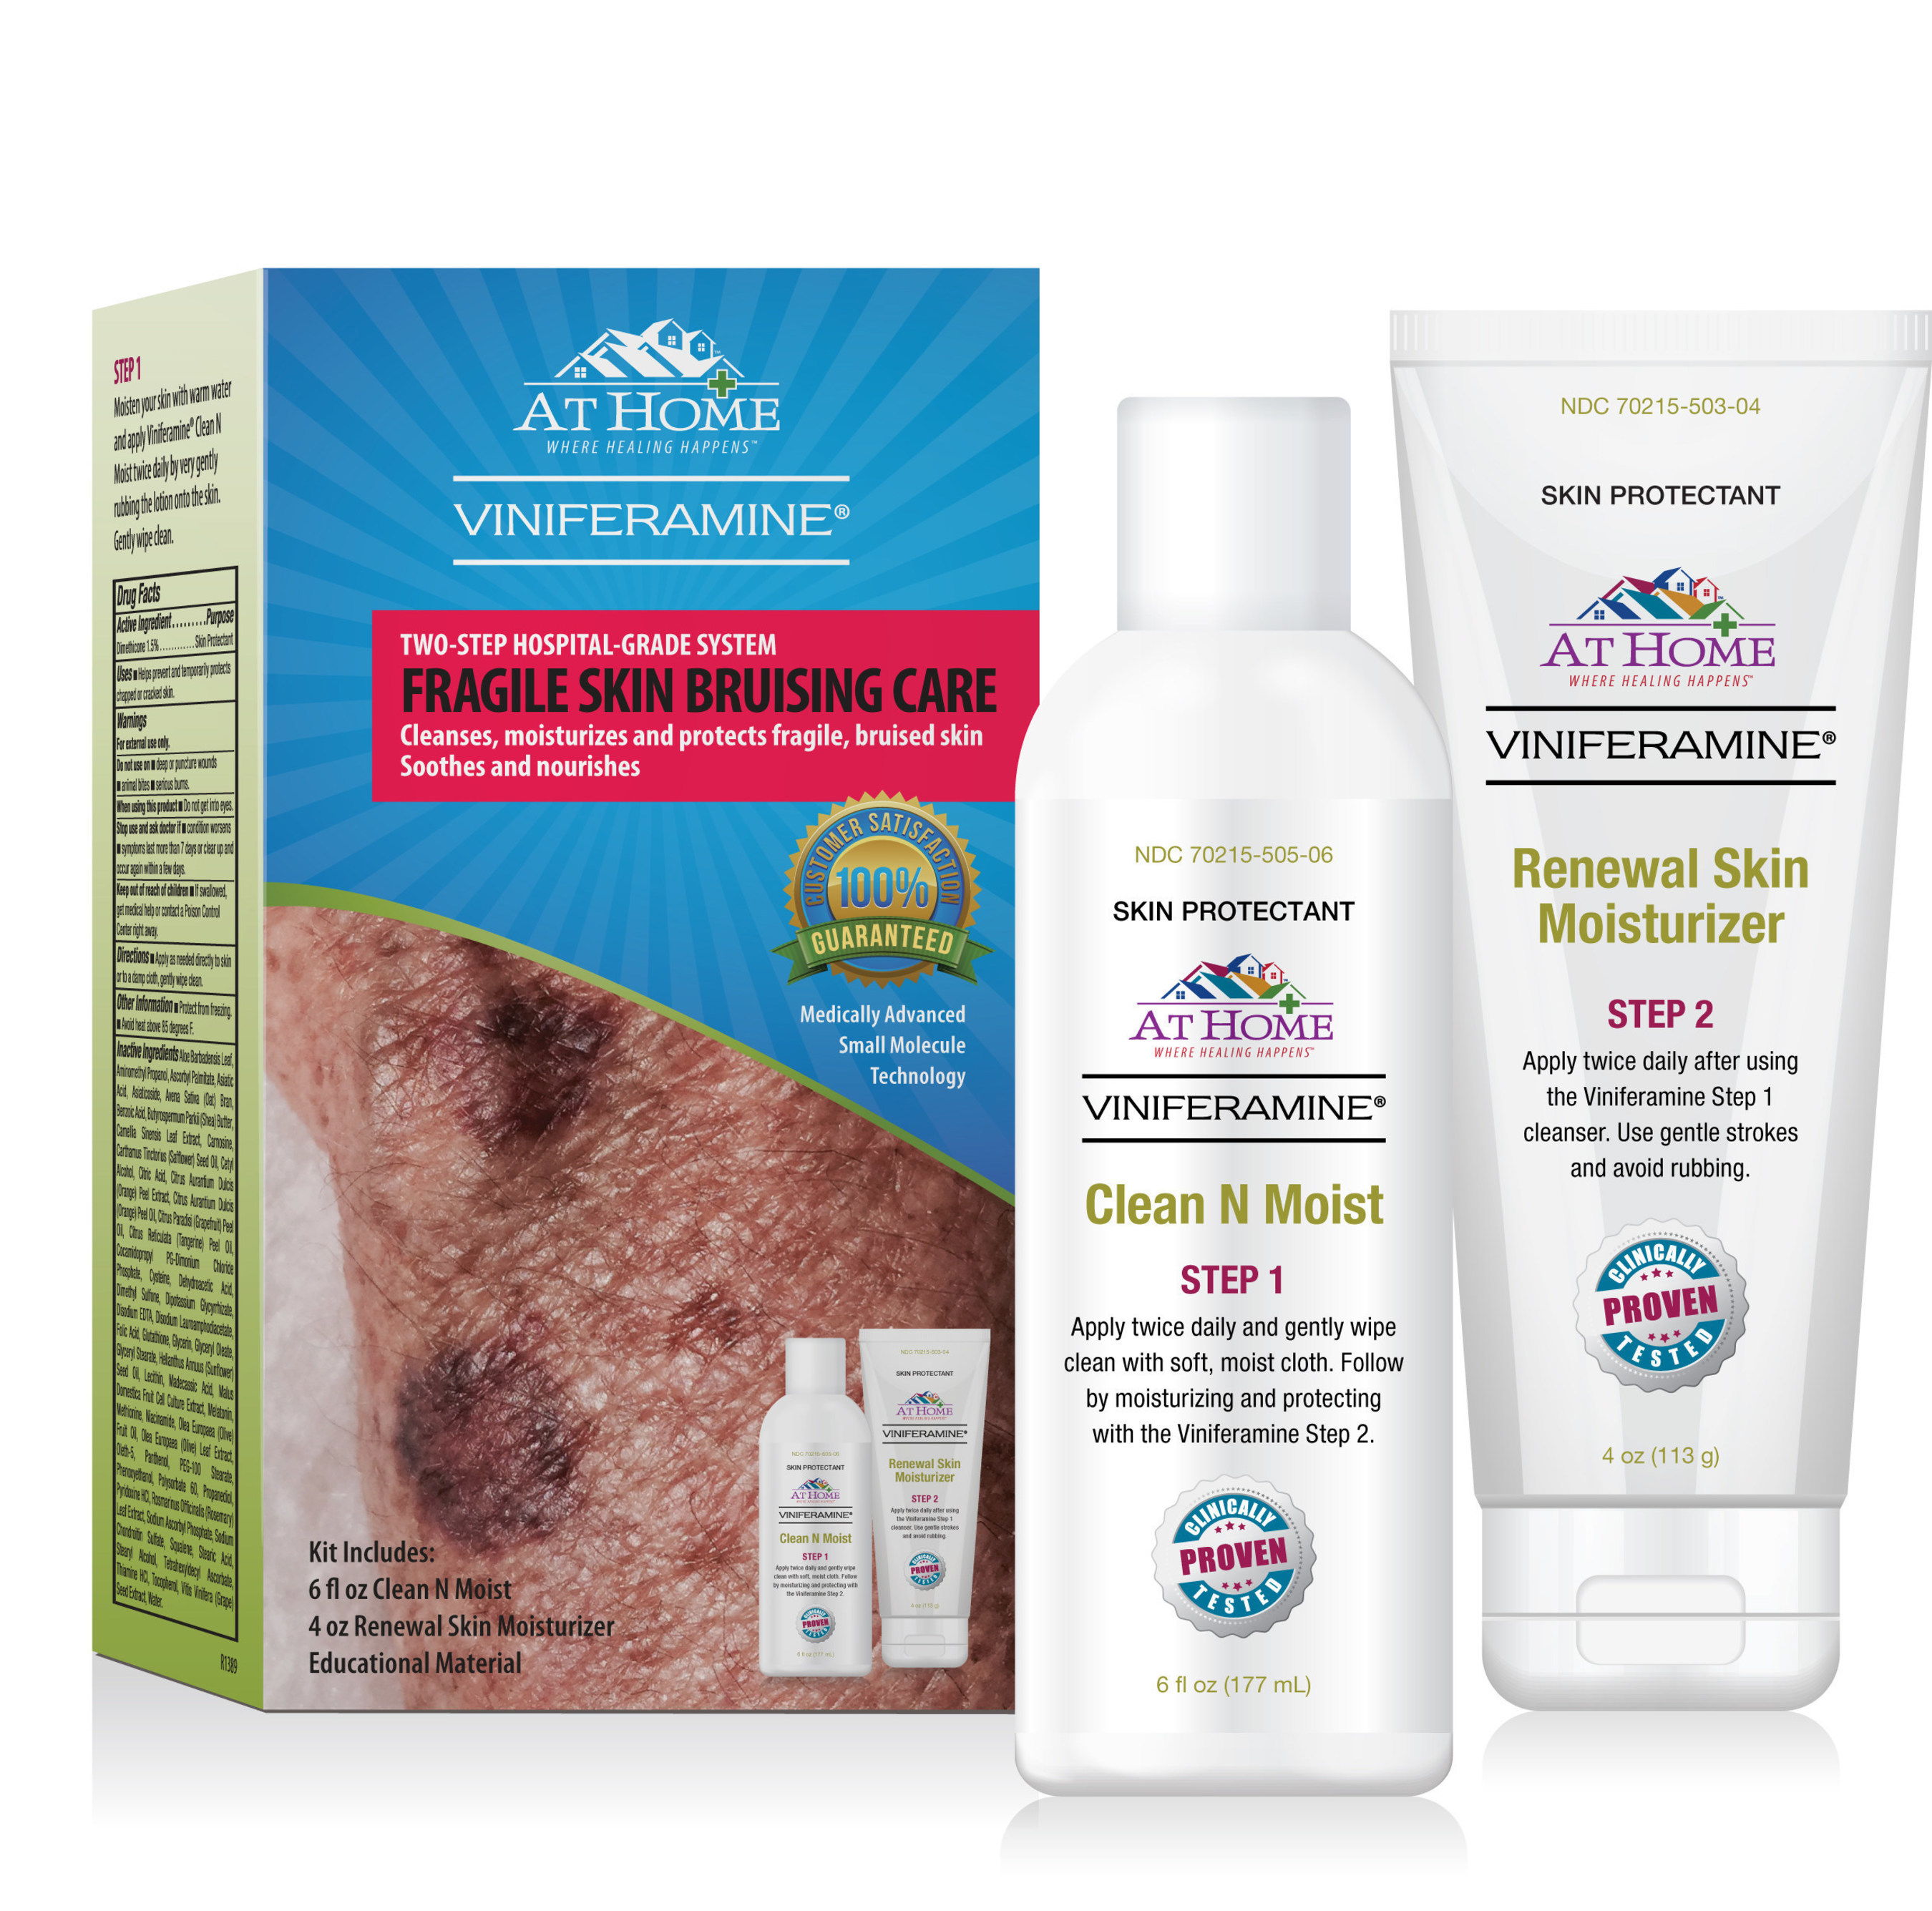 At Home(TM) Viniferamine(R) skin care kits were created by D. Elizabeth McCord PhD, FAPWCA with the idea of helping family caregivers provide quality, hospital-grade skin care to their loved ones at home.